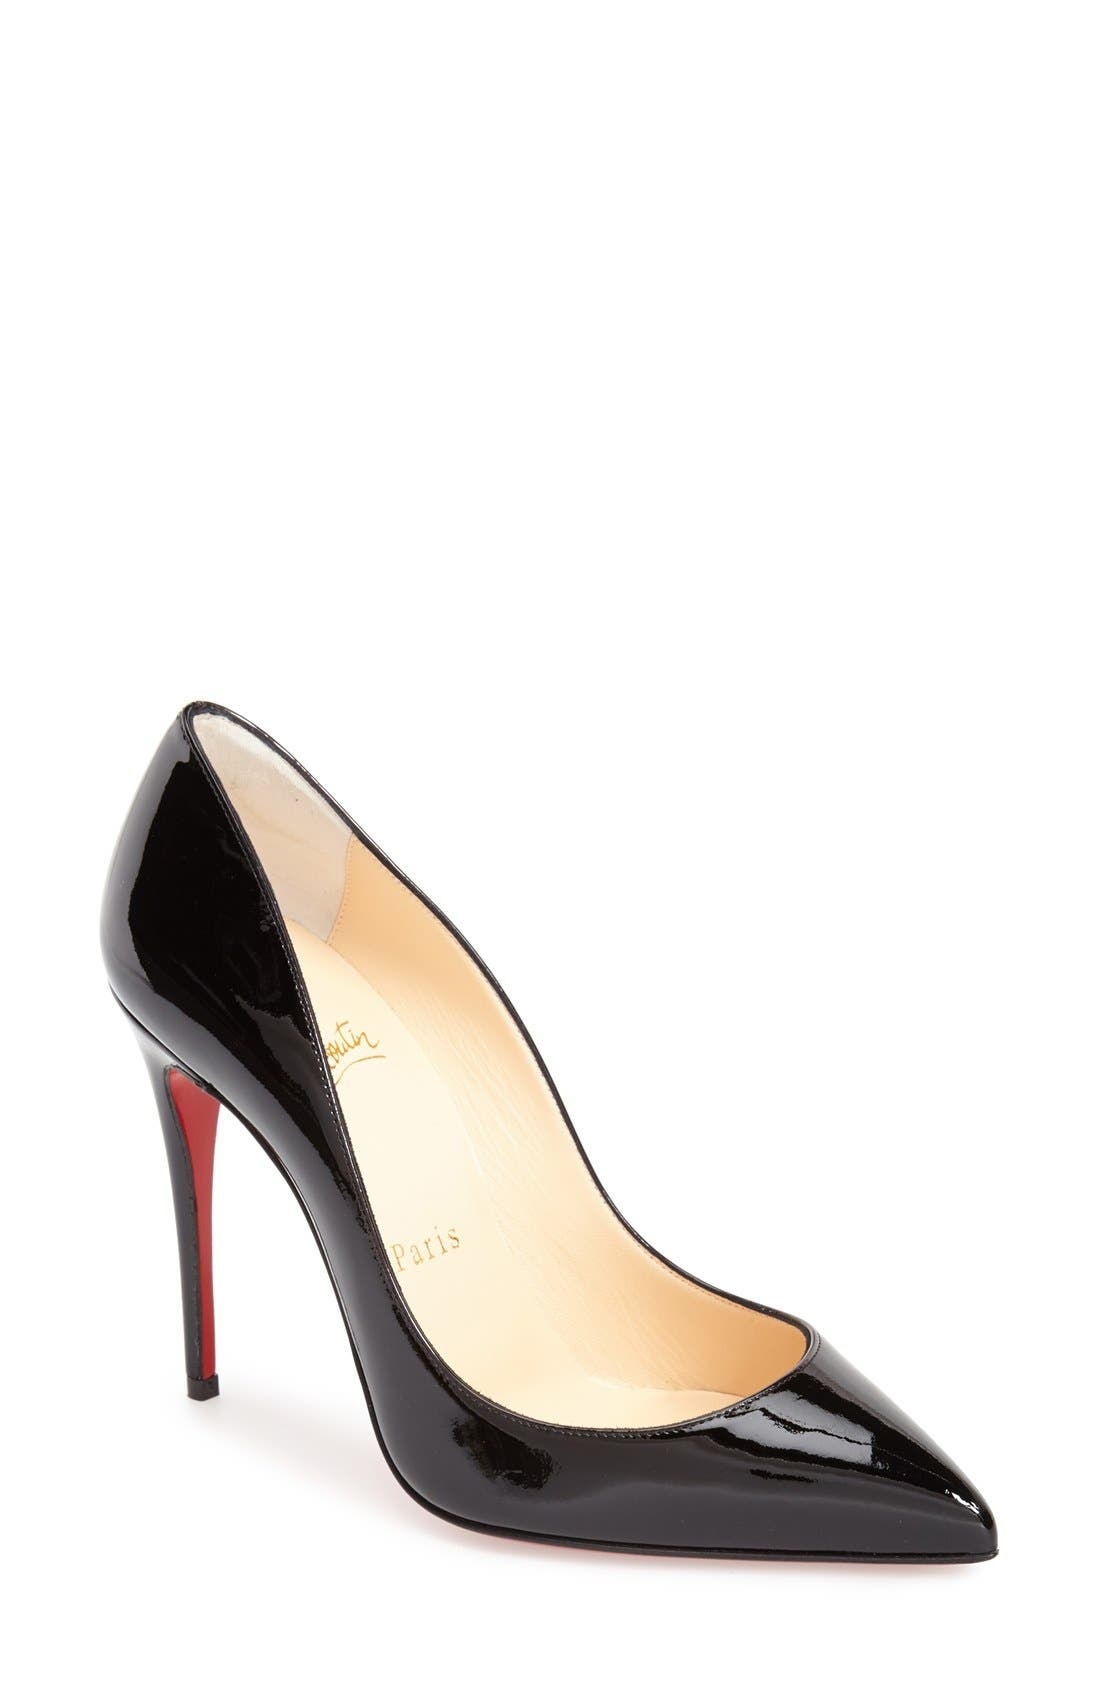 'Pigalle Follies' Pointy Toe Pump,                             Main thumbnail 1, color,                             Black Patent